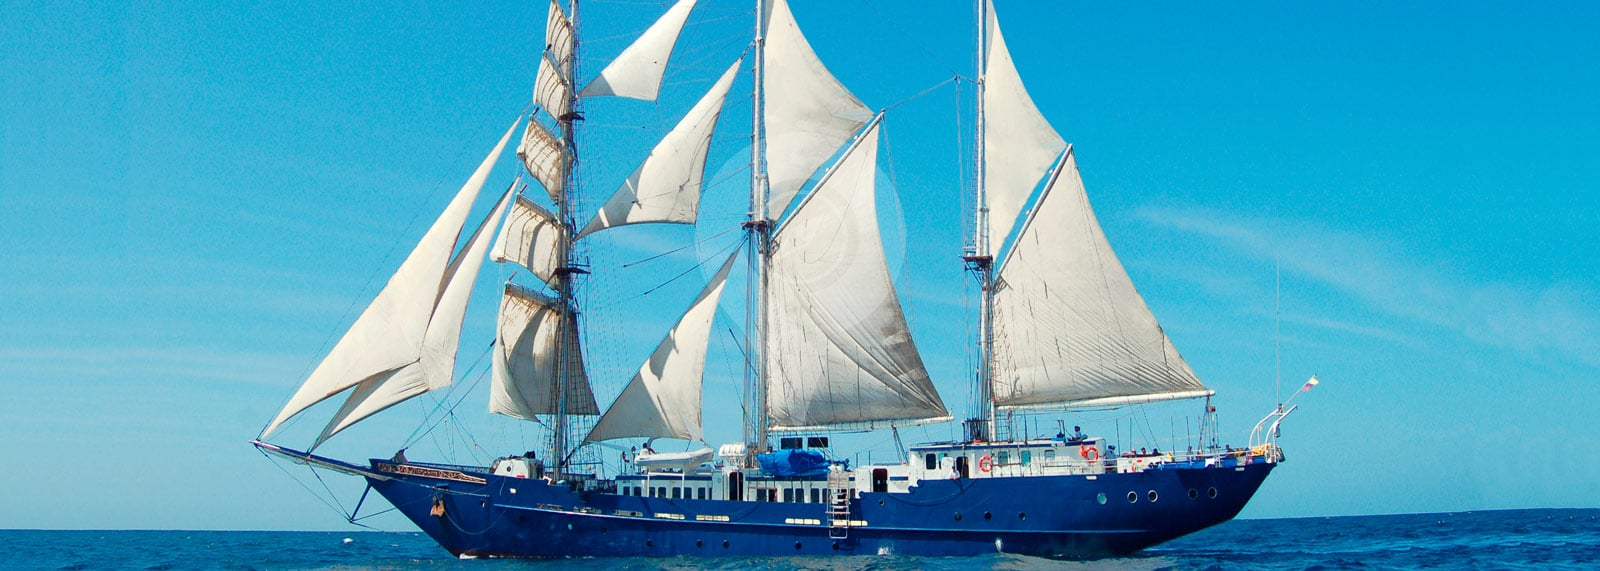 Mary Anne Galapagos Sailboat